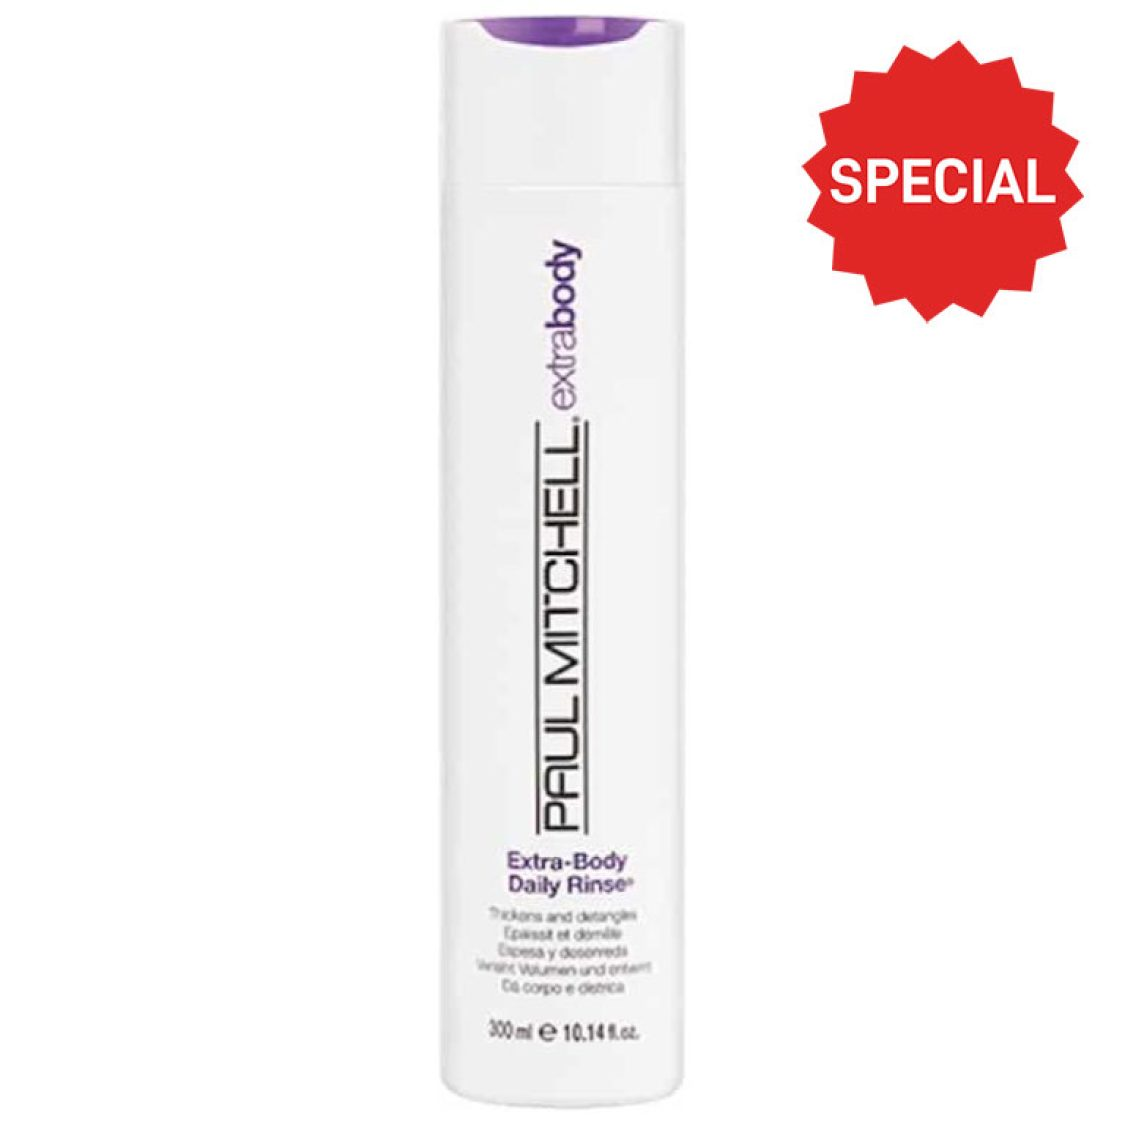 Paul Mitchell - Extra-Body - Daily Rinse 300ml